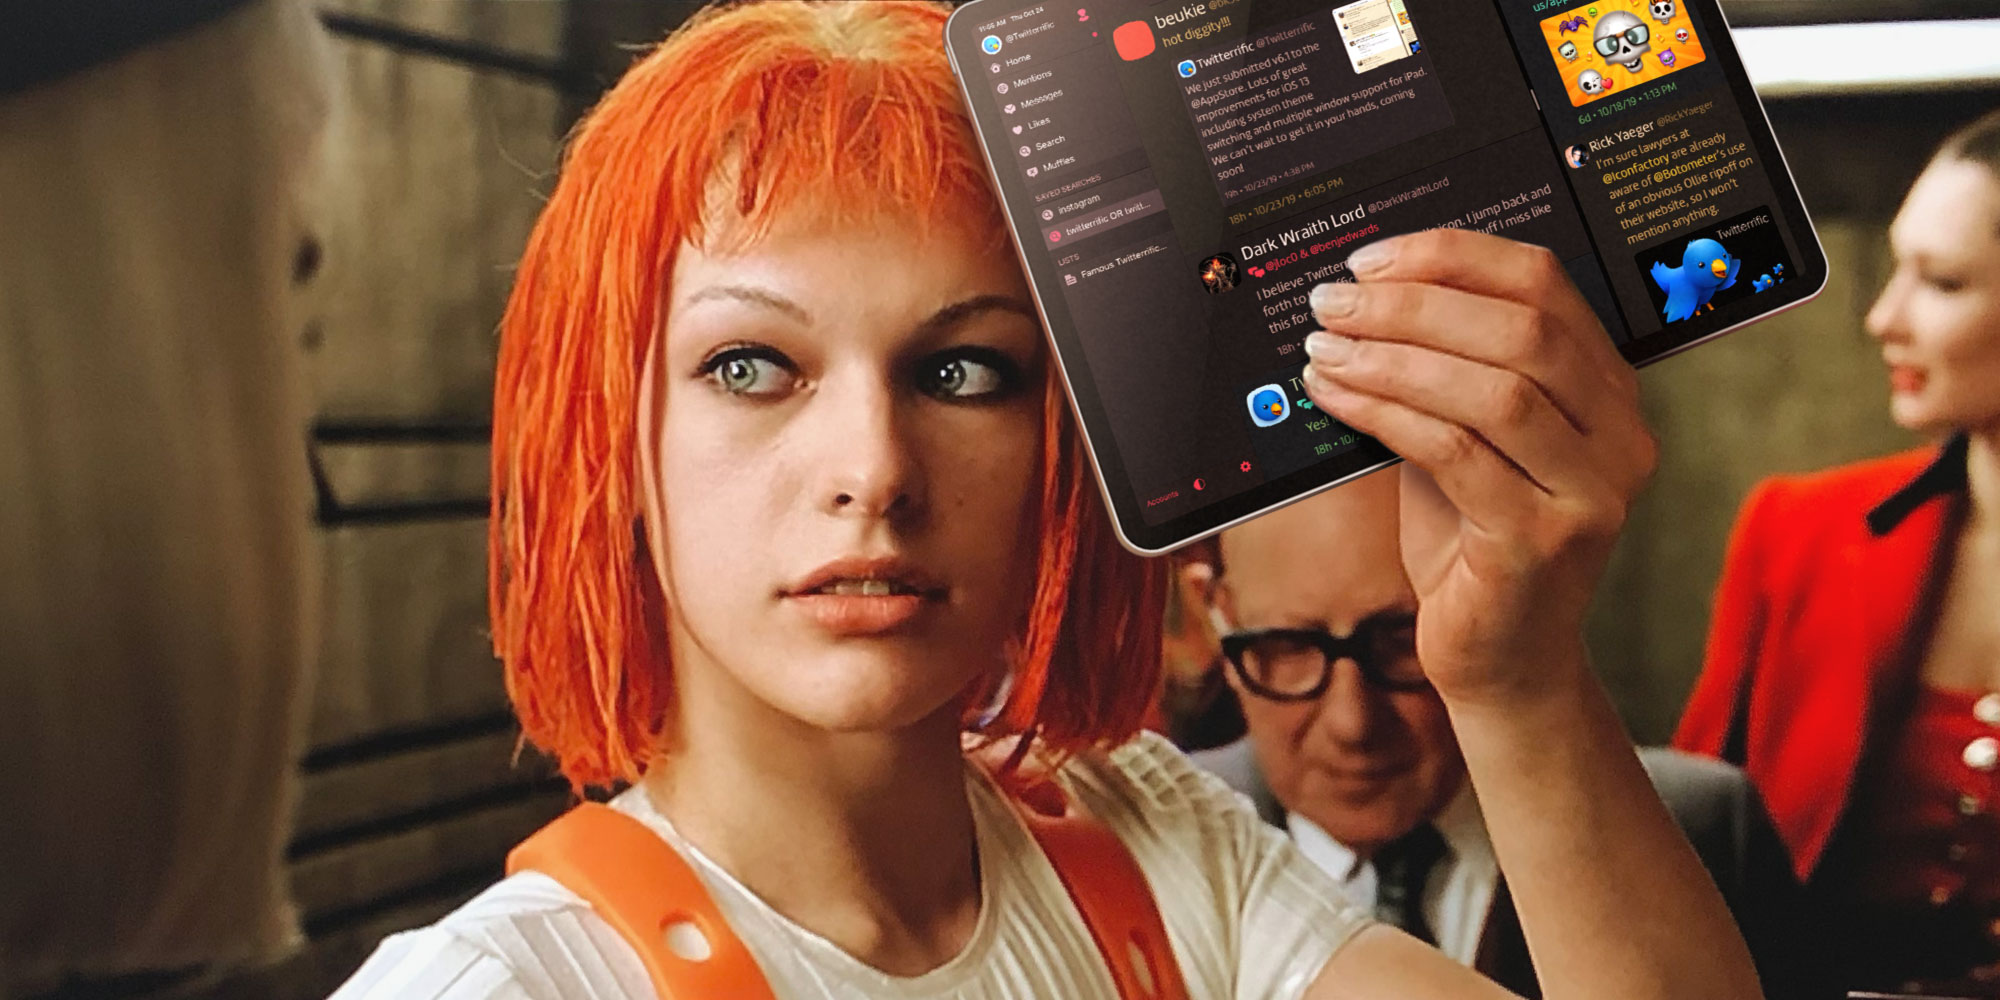 Leeloo holds from The Fifth Element holds up an iPad pro running Twitterrific 6.1 with multiple windows - MULTI-WINDOW!